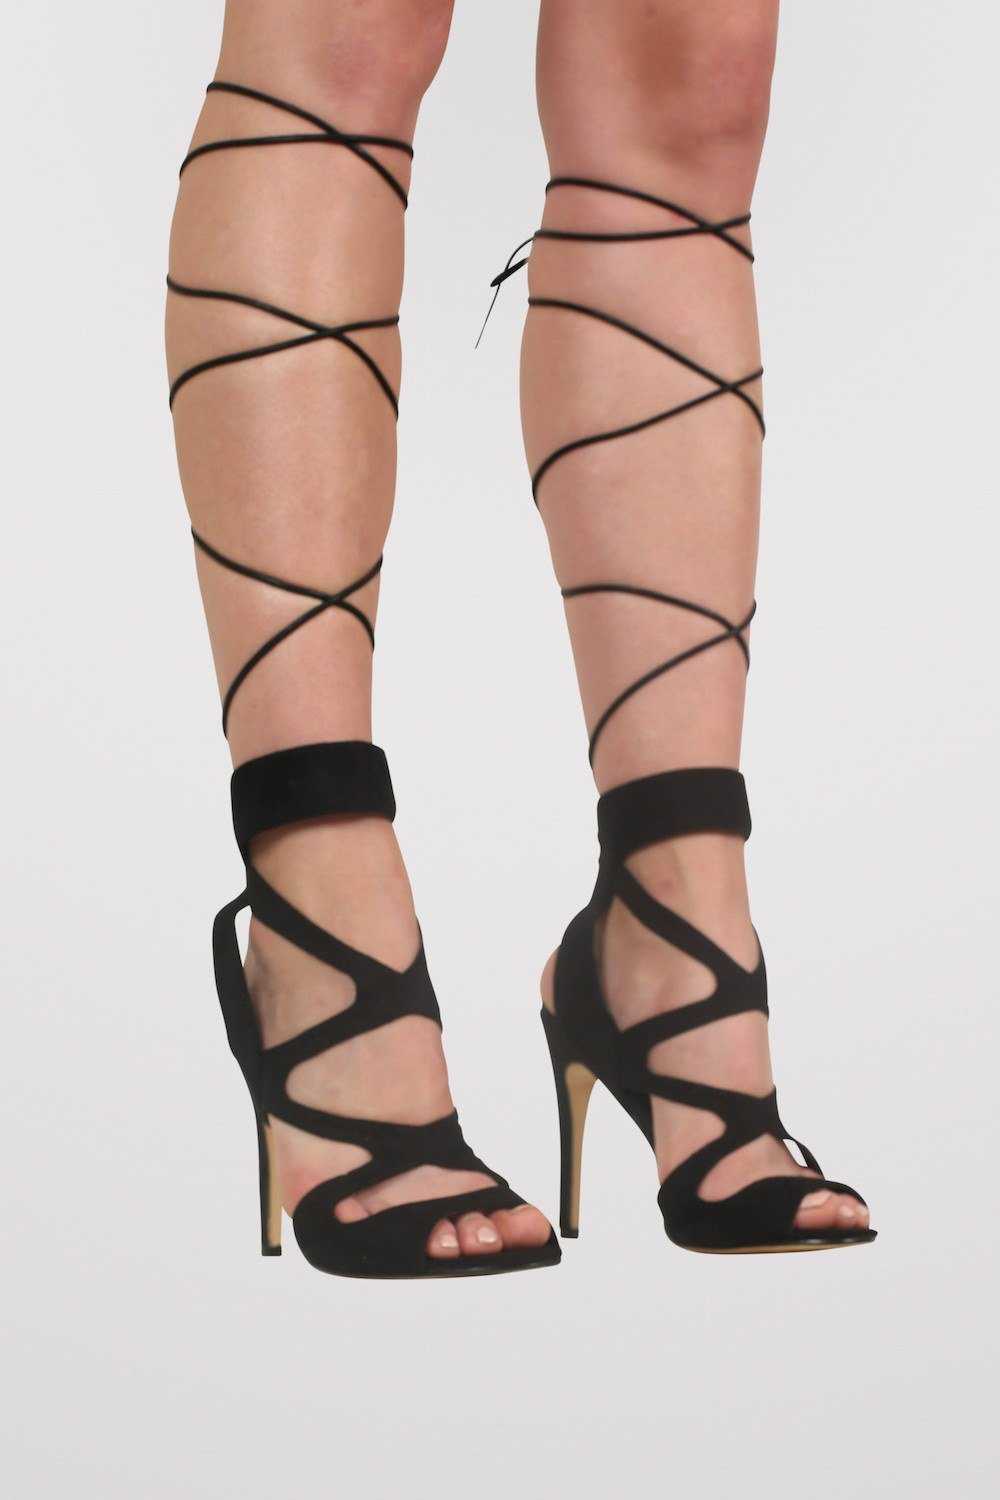 Lace Up Cross Strap High Heel Sandals in Black 0